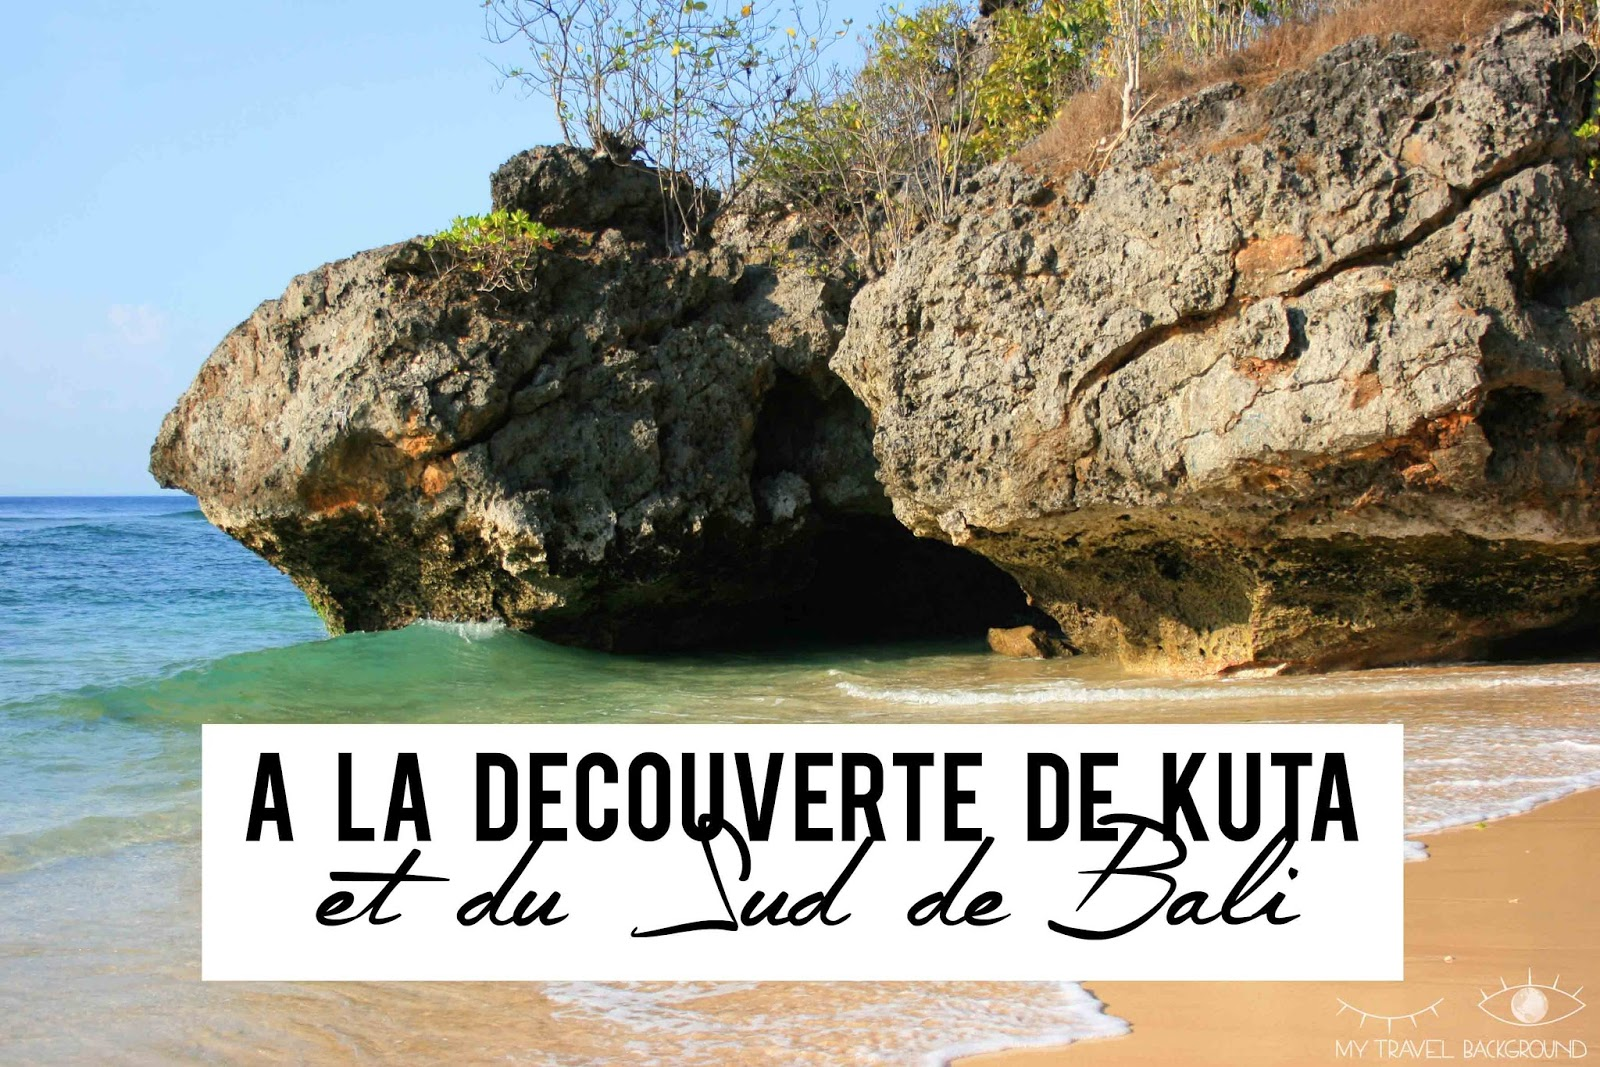 My Travel Background : A la découverte de Kuta et du Sud de Bali